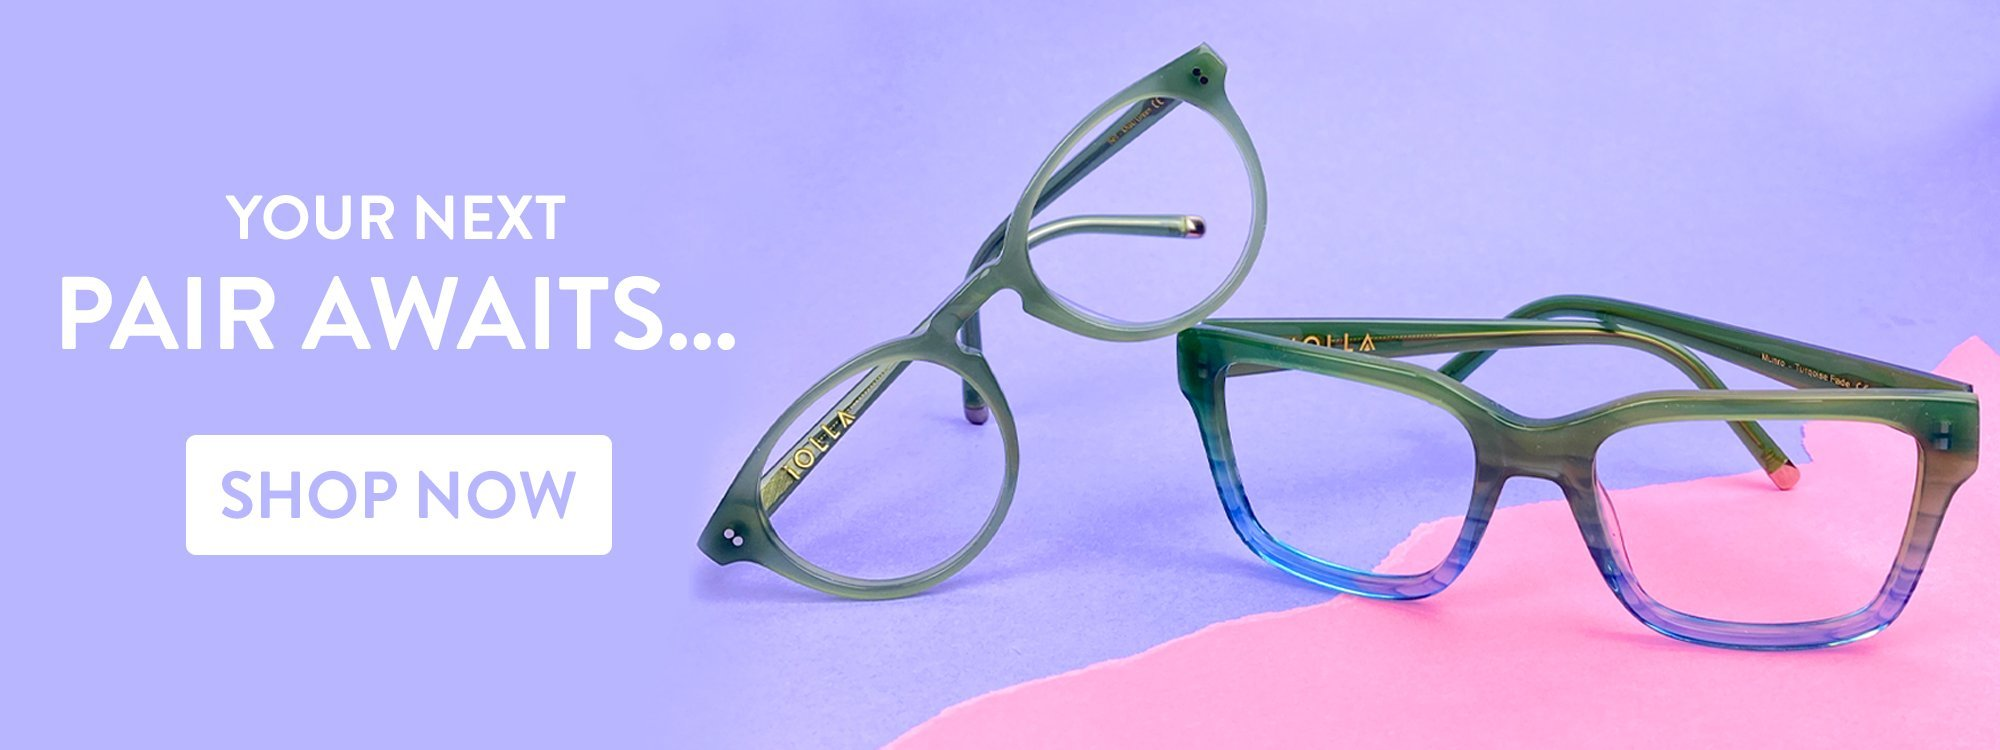 88ec0282e8435b IOLLA - A whole new way to enjoy eyewear - Priced at £65